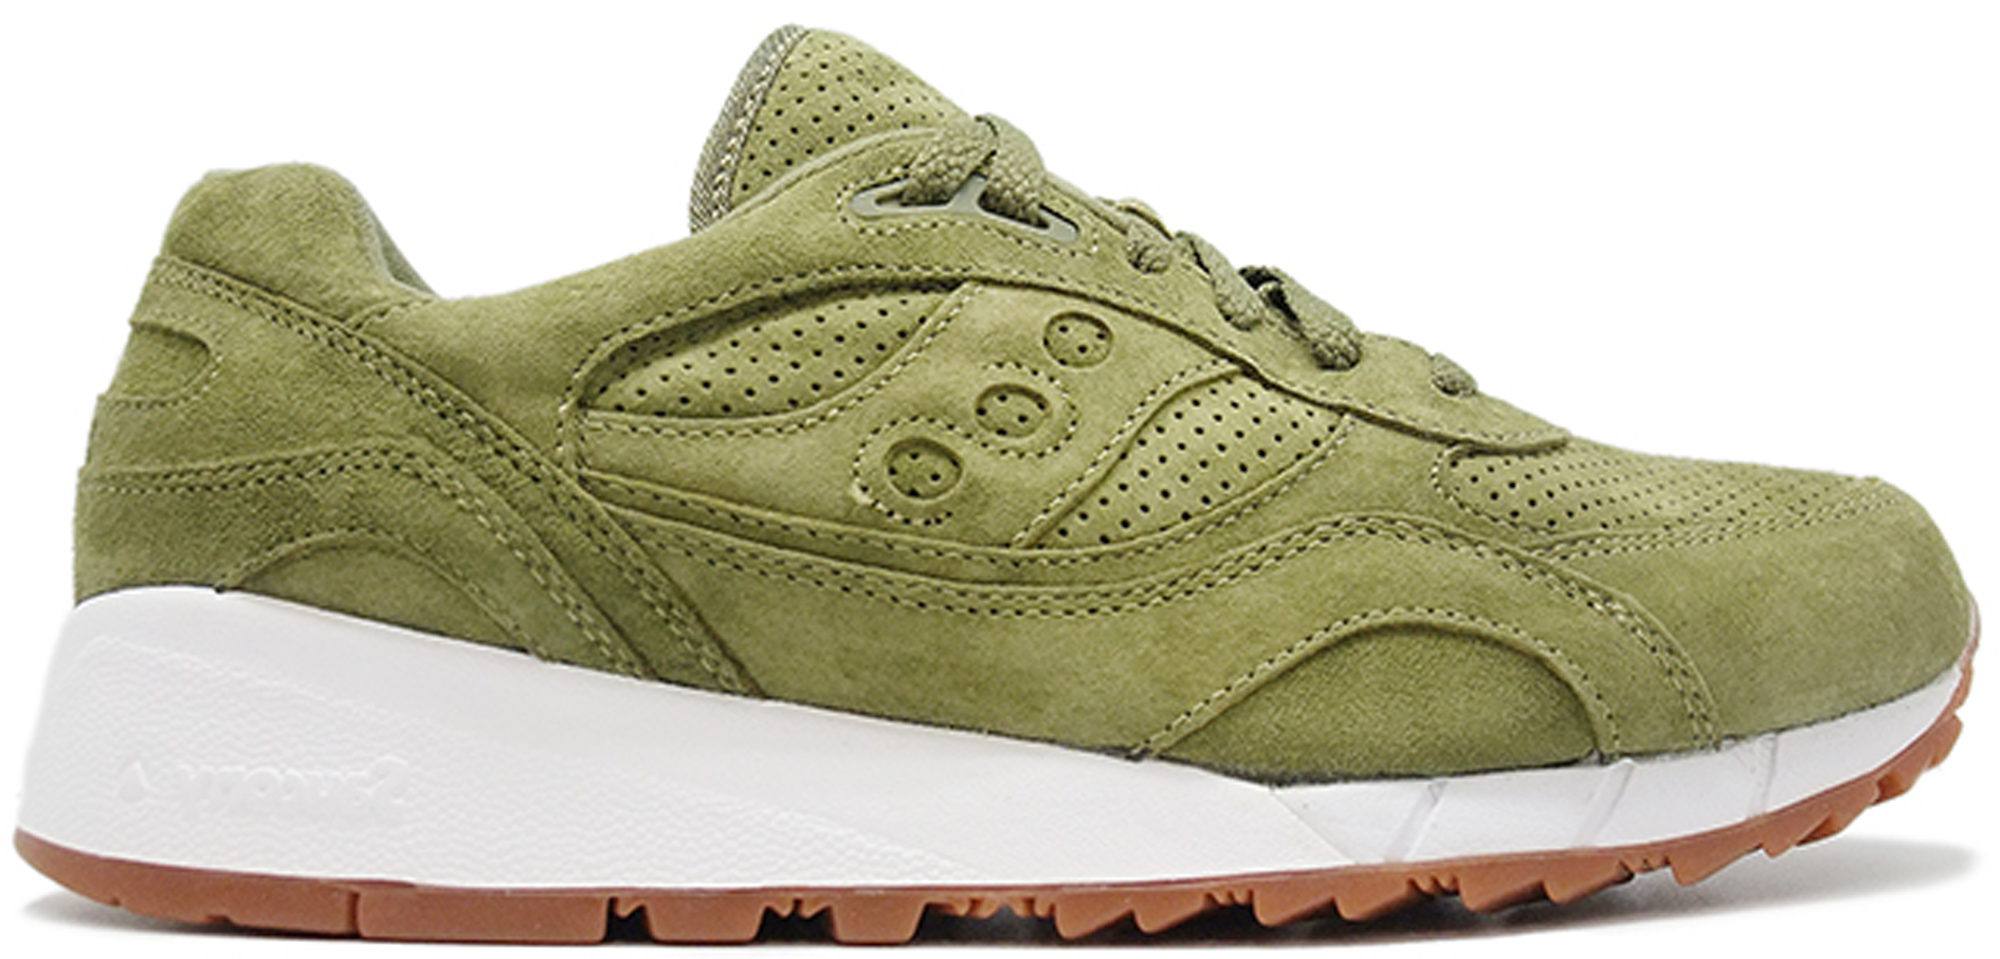 Saucony Shadow 6000 Olive Suede (Packer